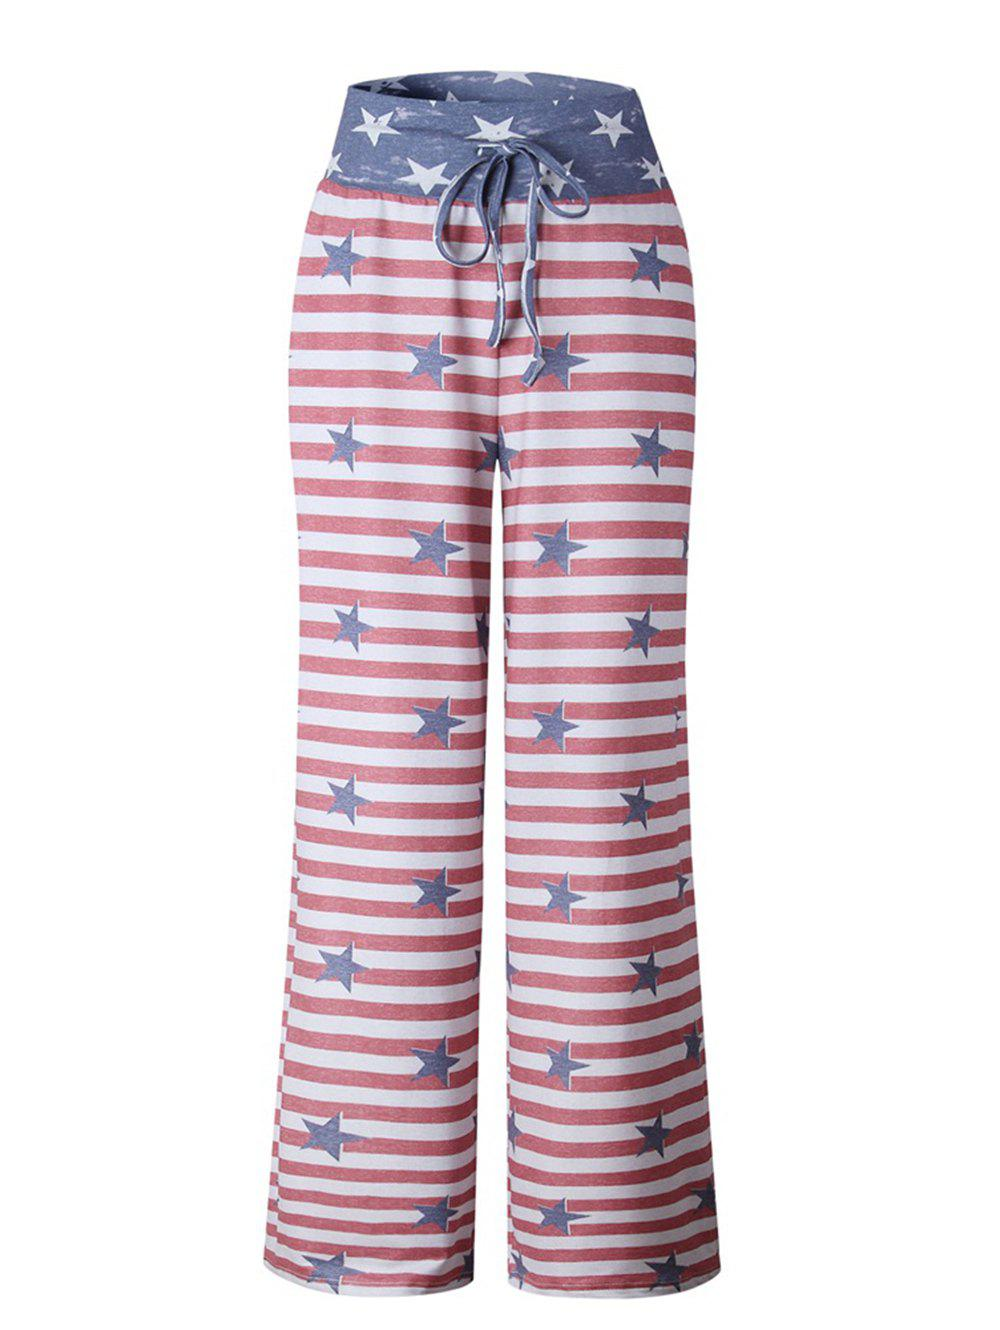 Shops Womens Stretch Comfy Striped Drawstring Wide Leg High Waisted Pajama Pants